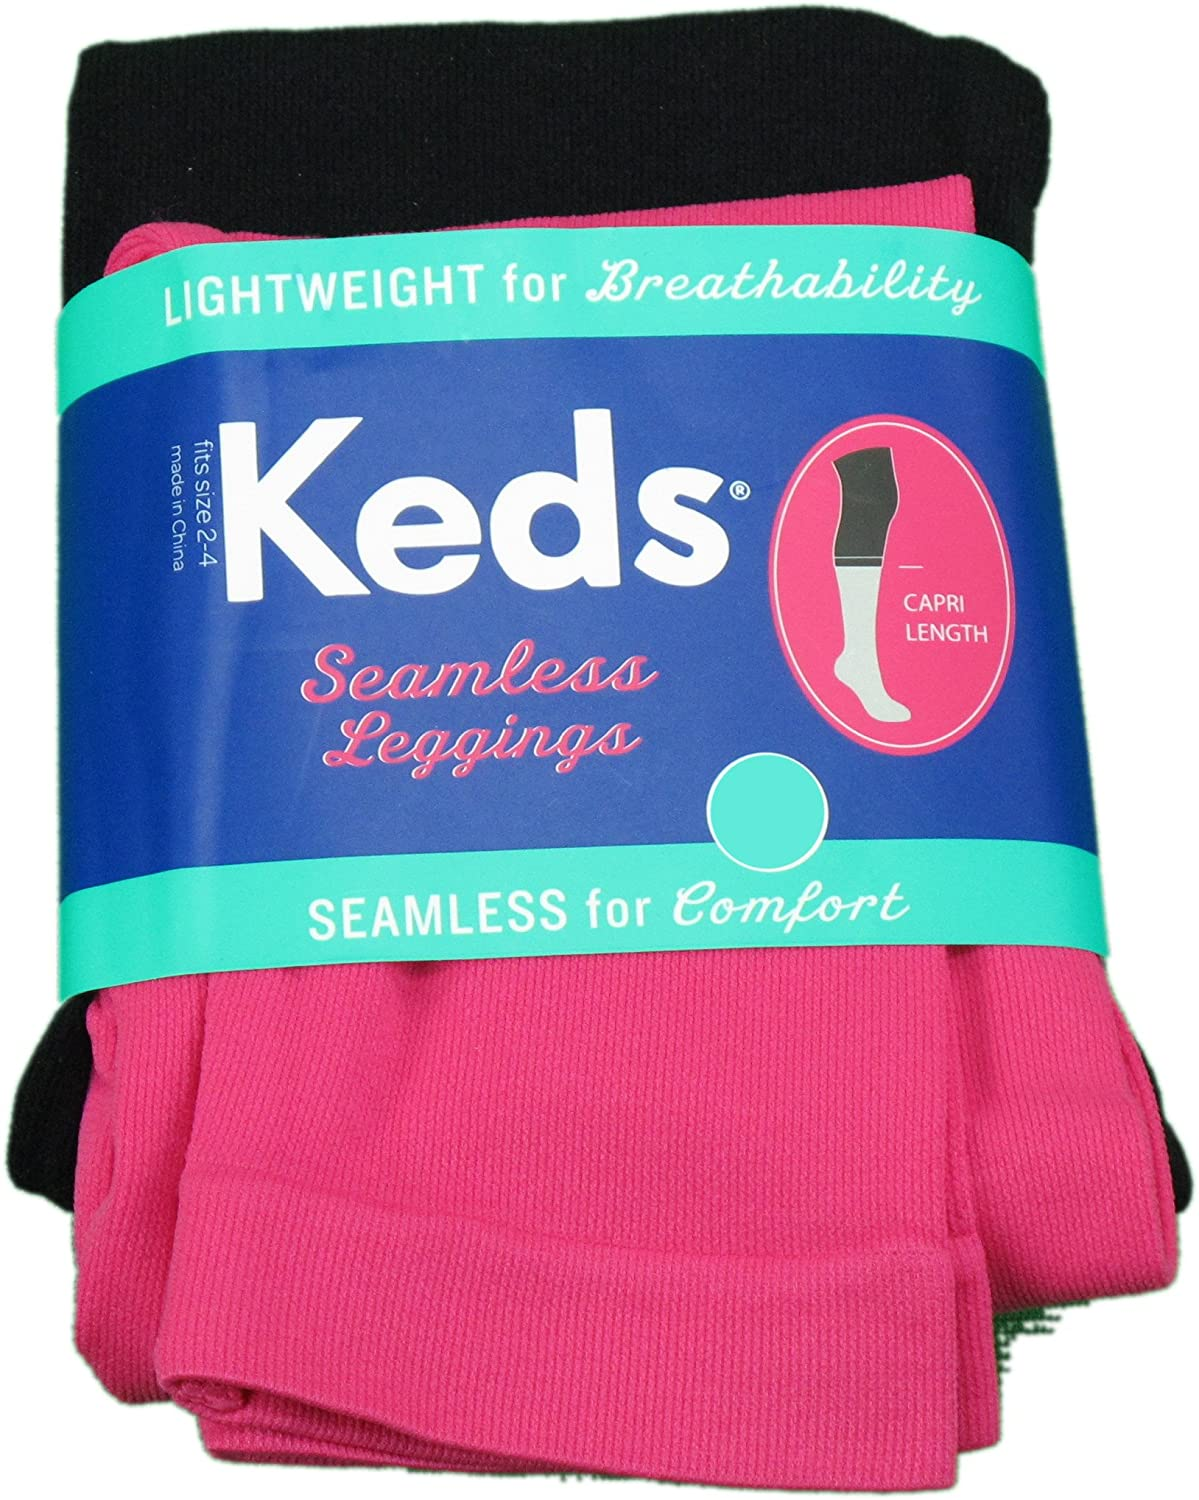 Keds 2-PK Girls Lightweight Capri Length Seamless Leggings Pink//Black